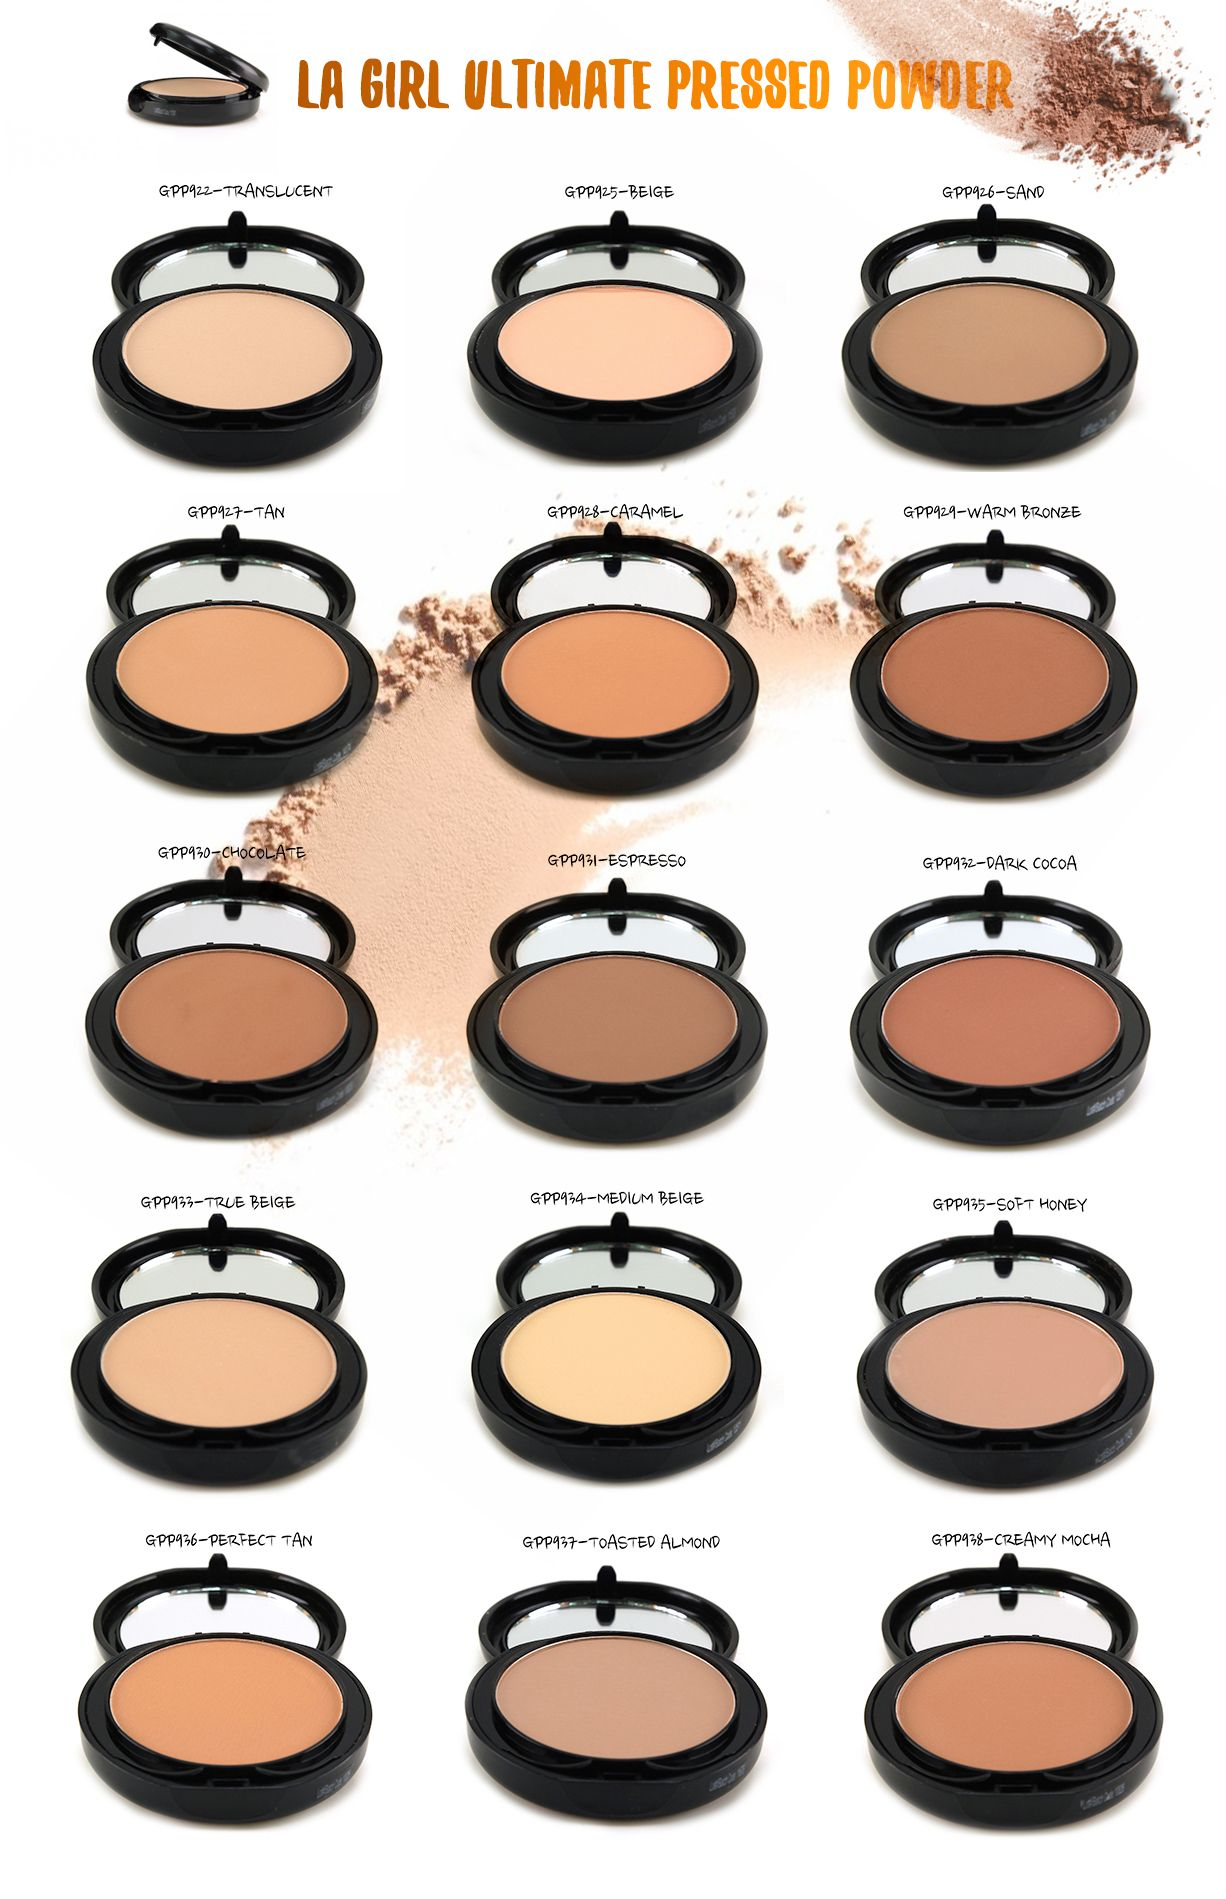 Get a natural matte finish with LA Girl Ultimate Pressed